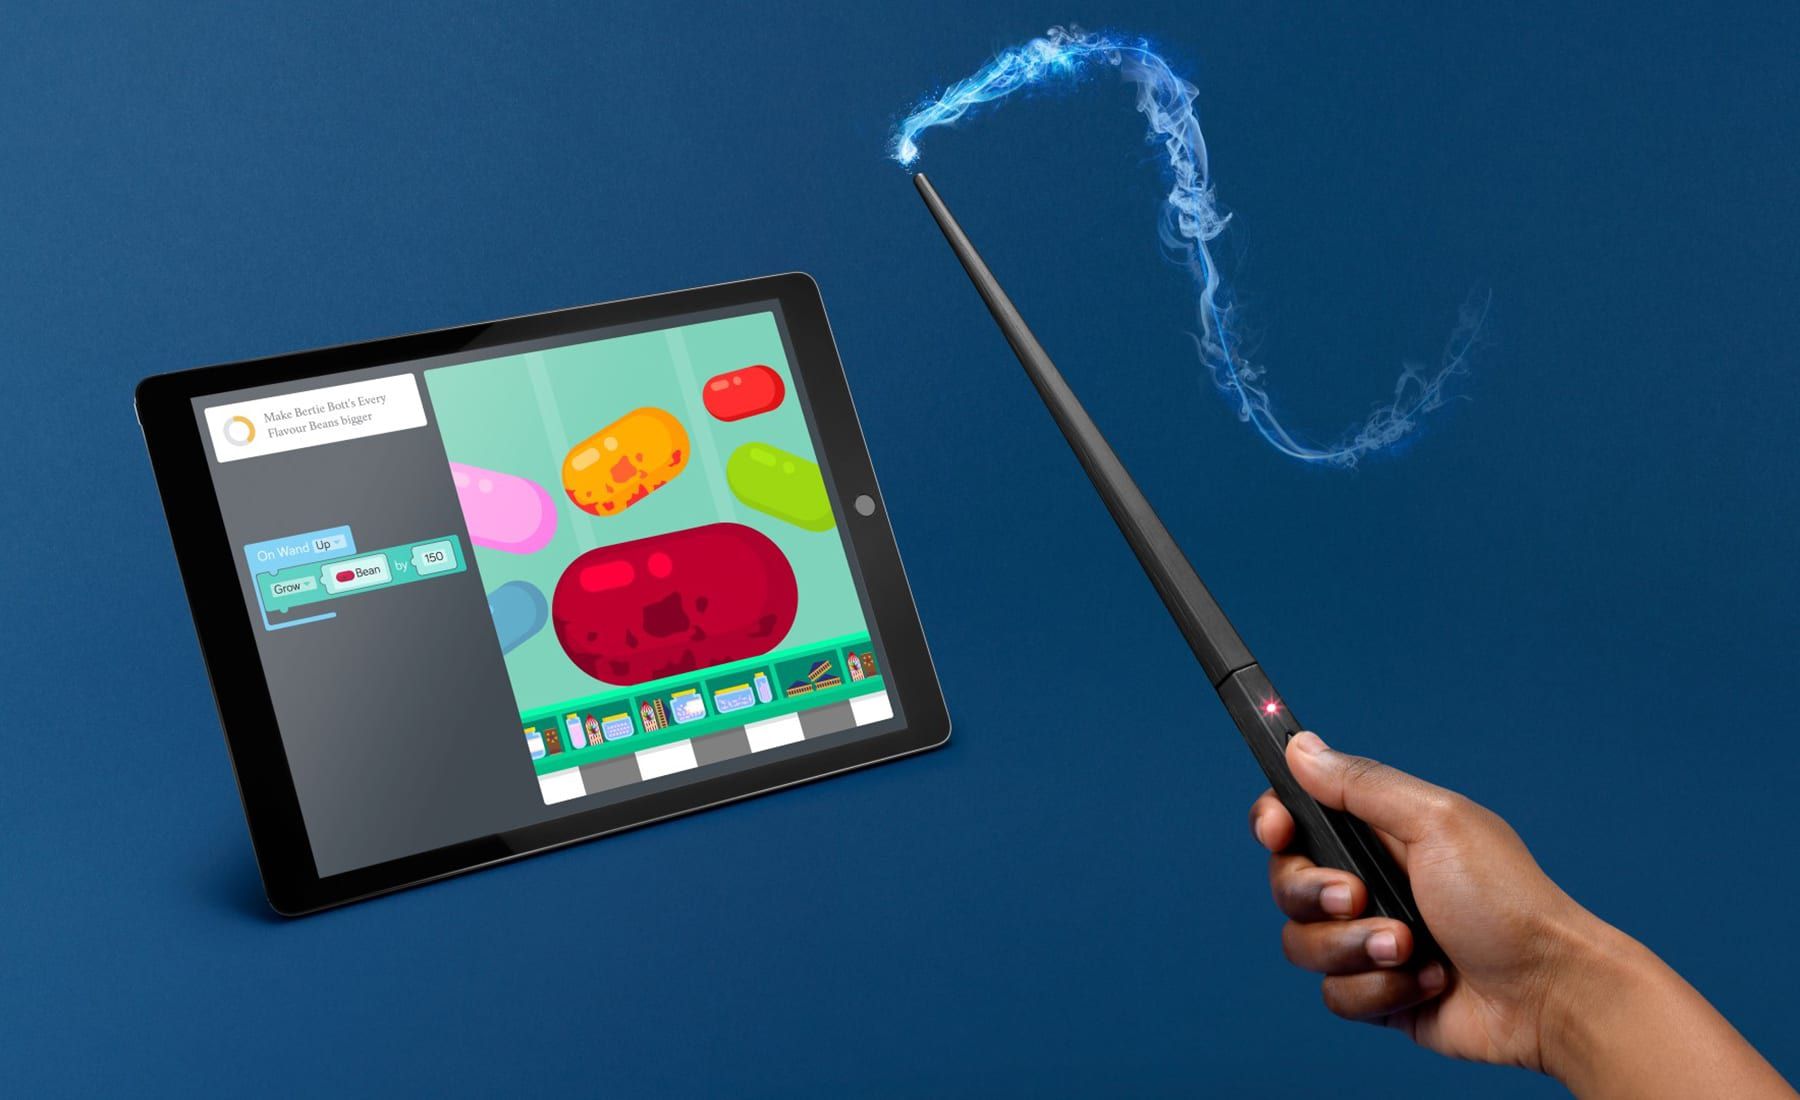 6128bd0bb Kano's next coding kit is a Harry Potter wand